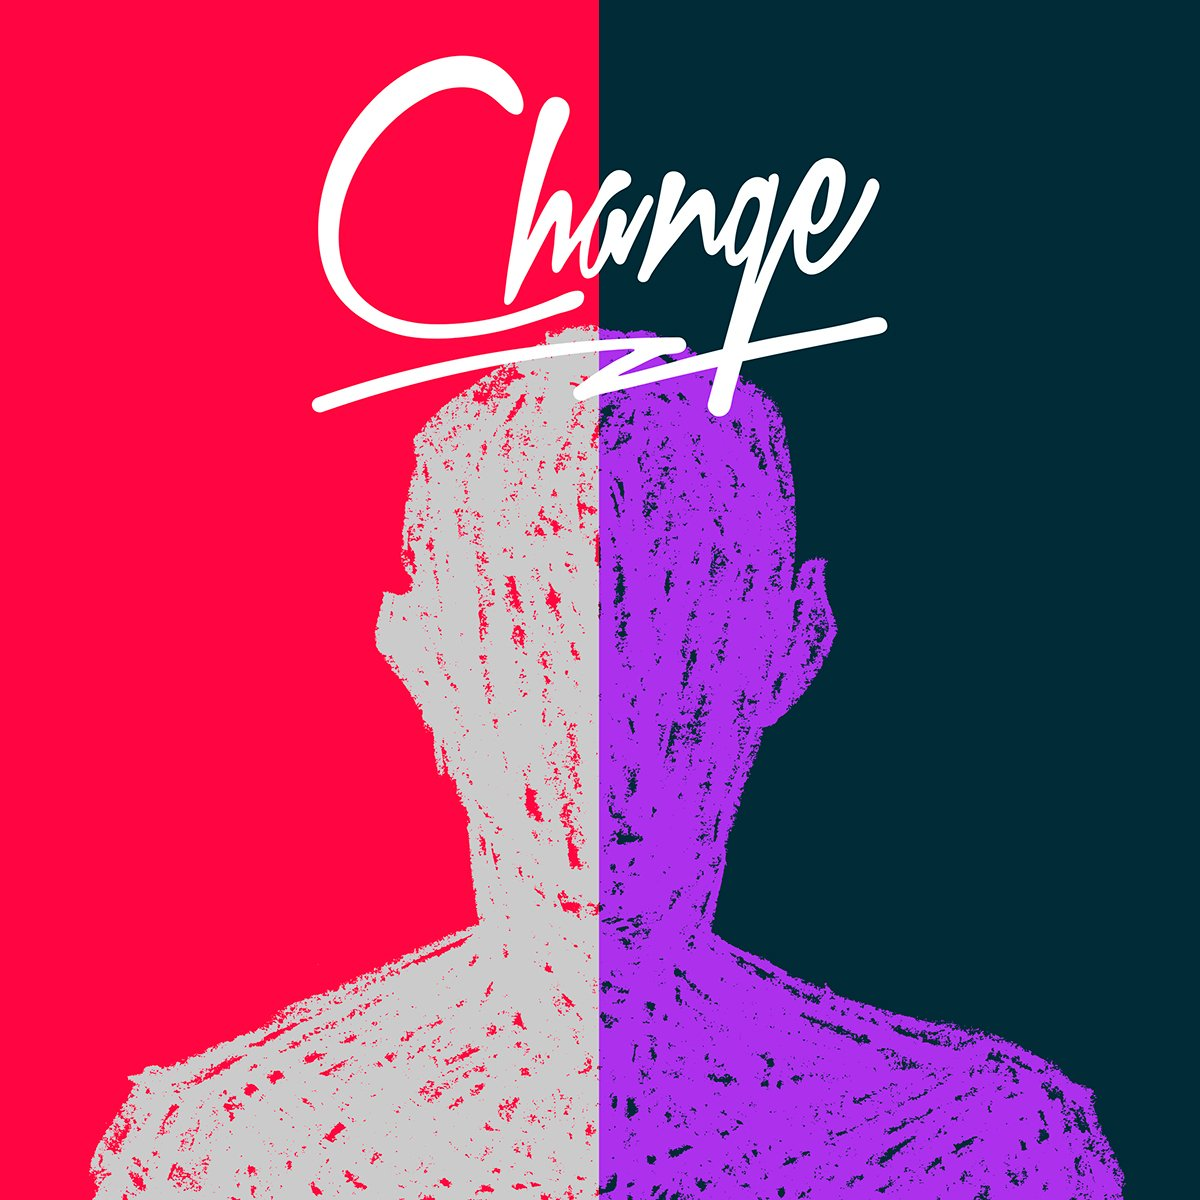 Check out @ONEOKROCK_japan's new track 'Change' now! Stream/Download it here: https://t.co/druIYFdlgC https://t.co/baIRB7qHKC